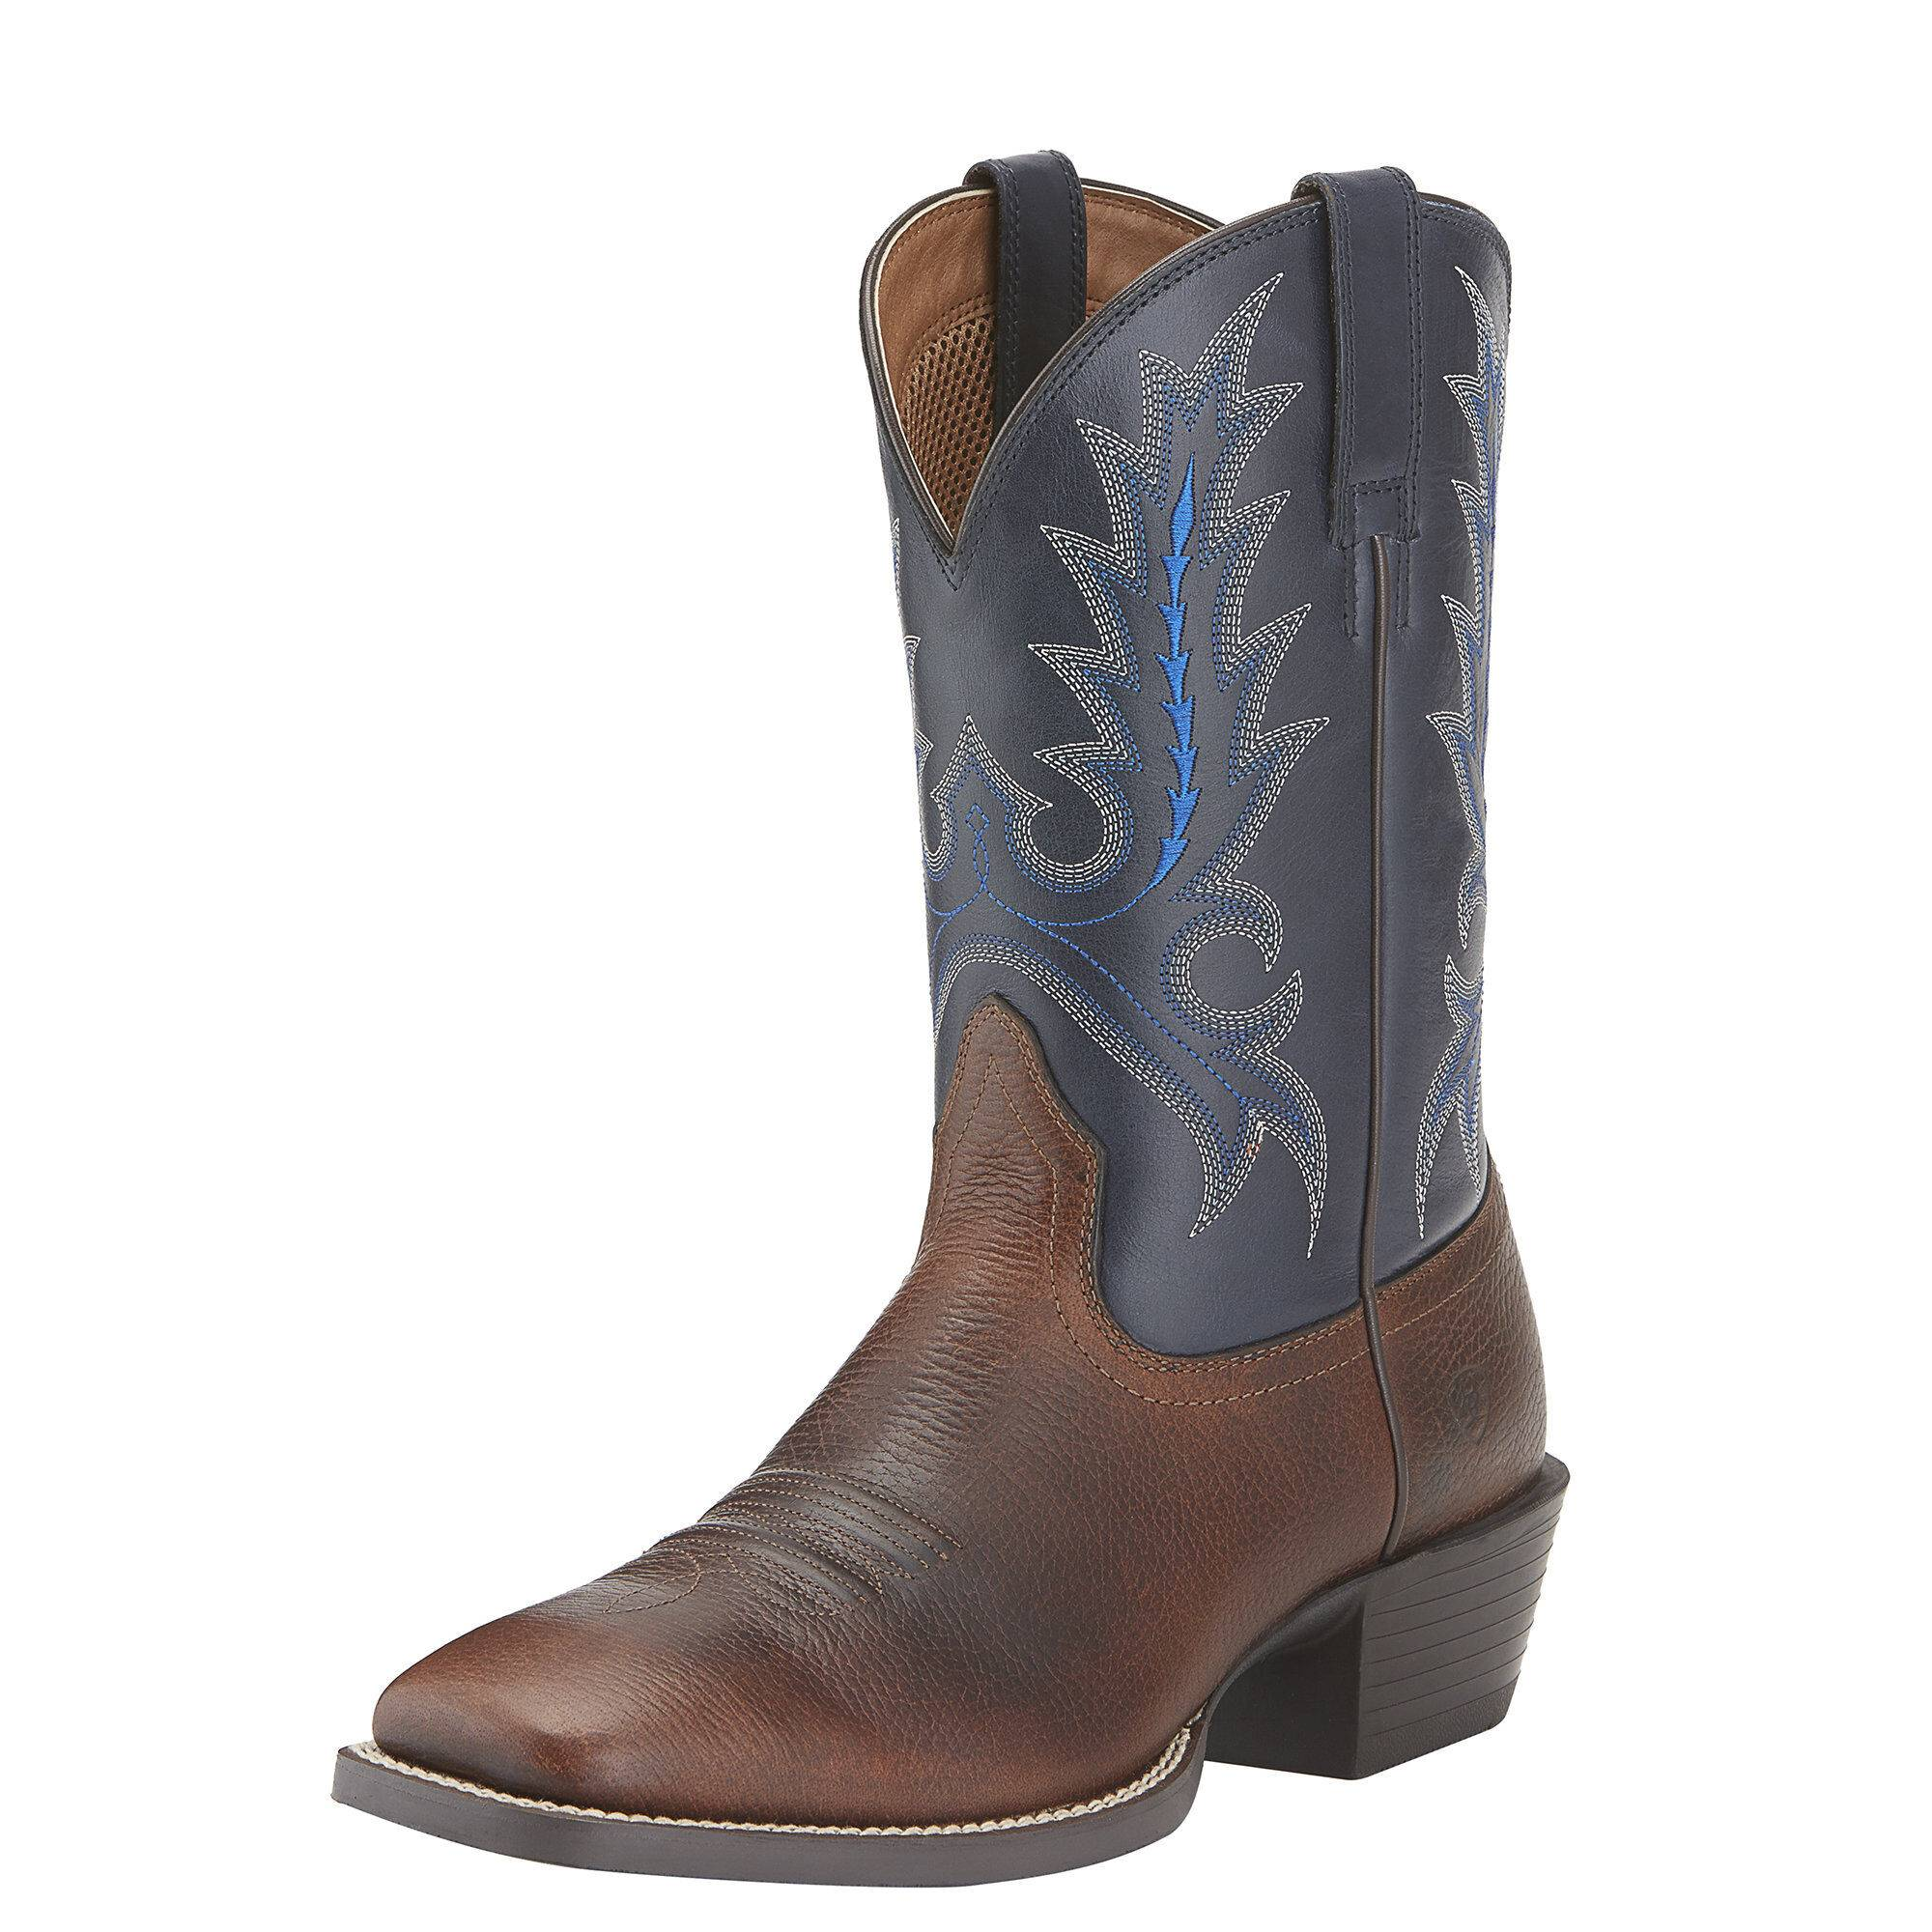 Ariat Men's Sport Outfitter Western Boots in Fiddle Brown Leather, Size 8.5 D / Medium by Ariat